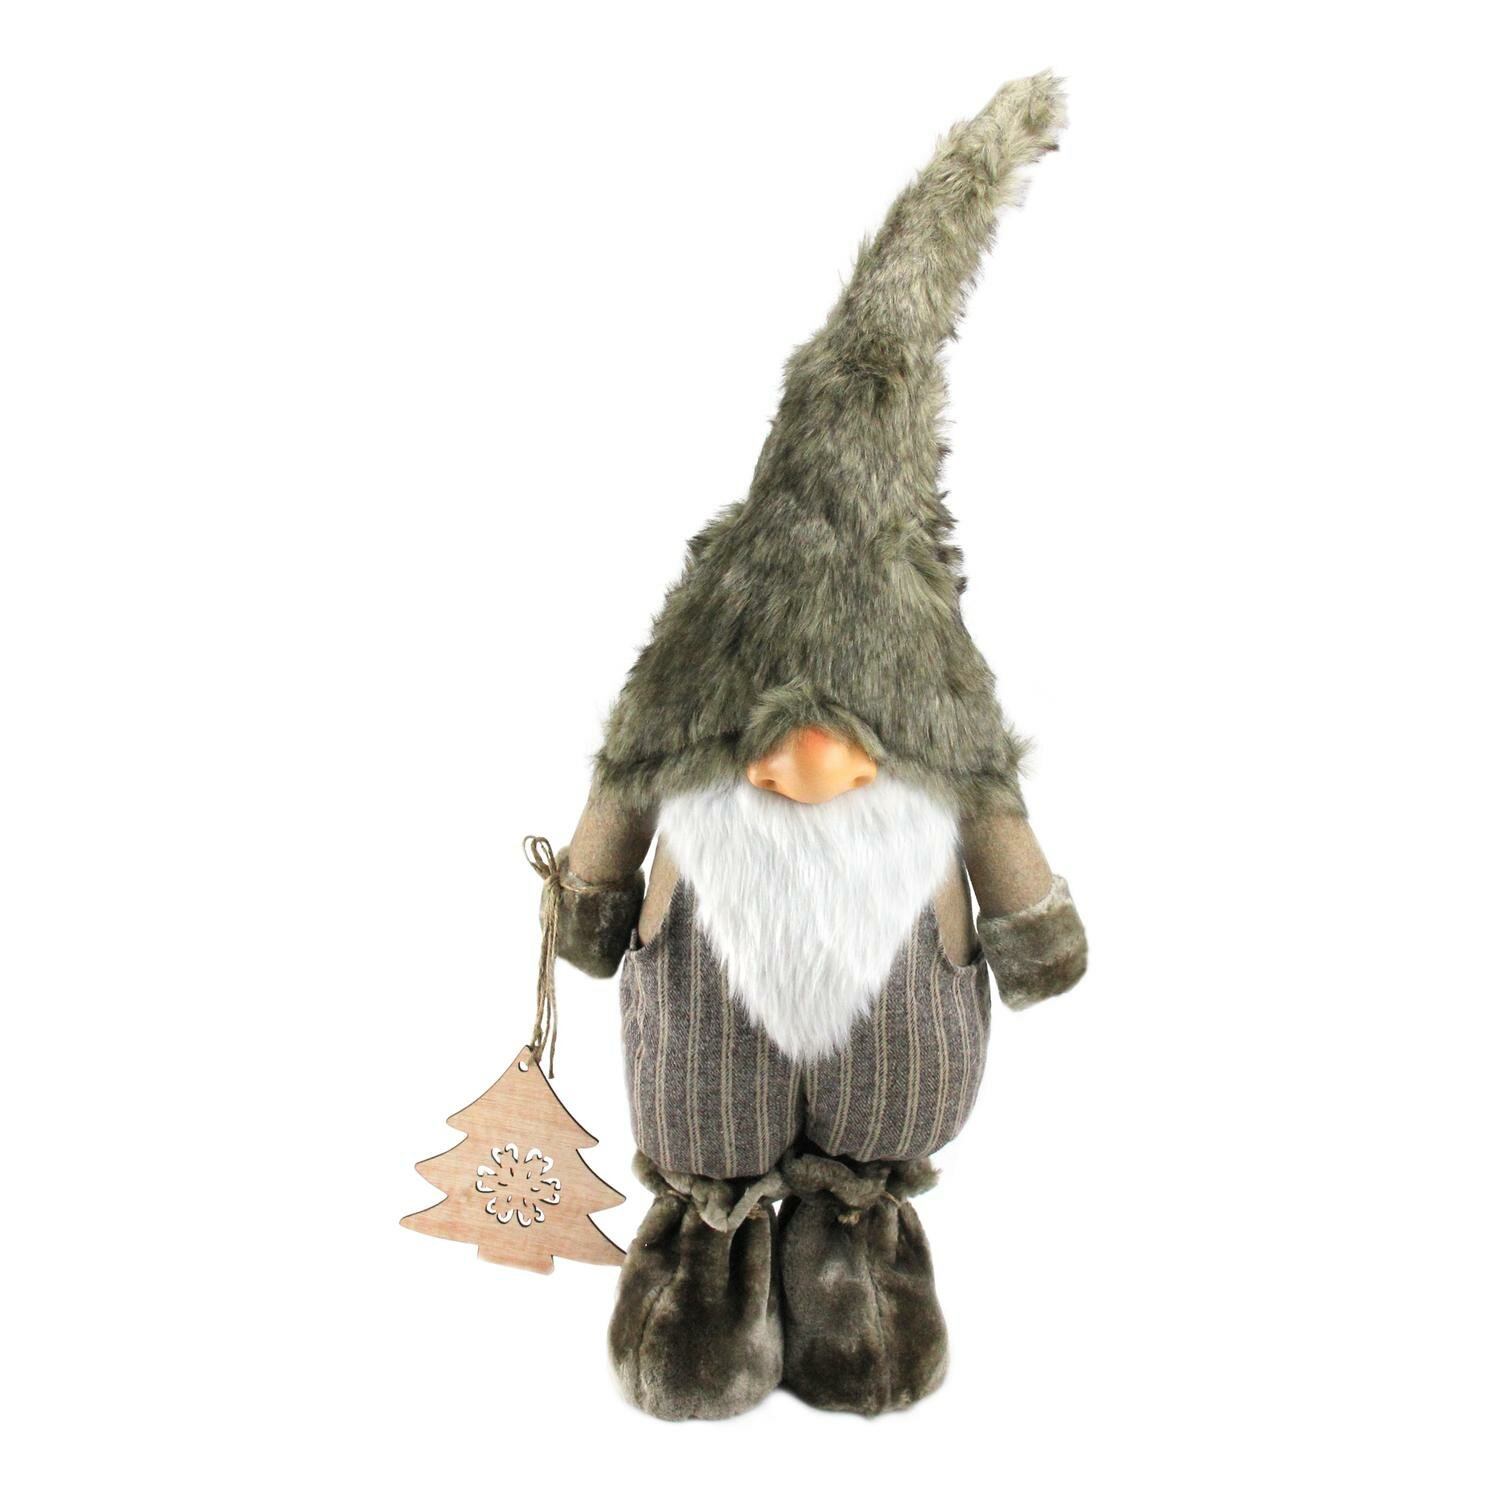 Northlight Woodland Gnome With Striped Pants Holding Christmas Tree Figurine Wayfair